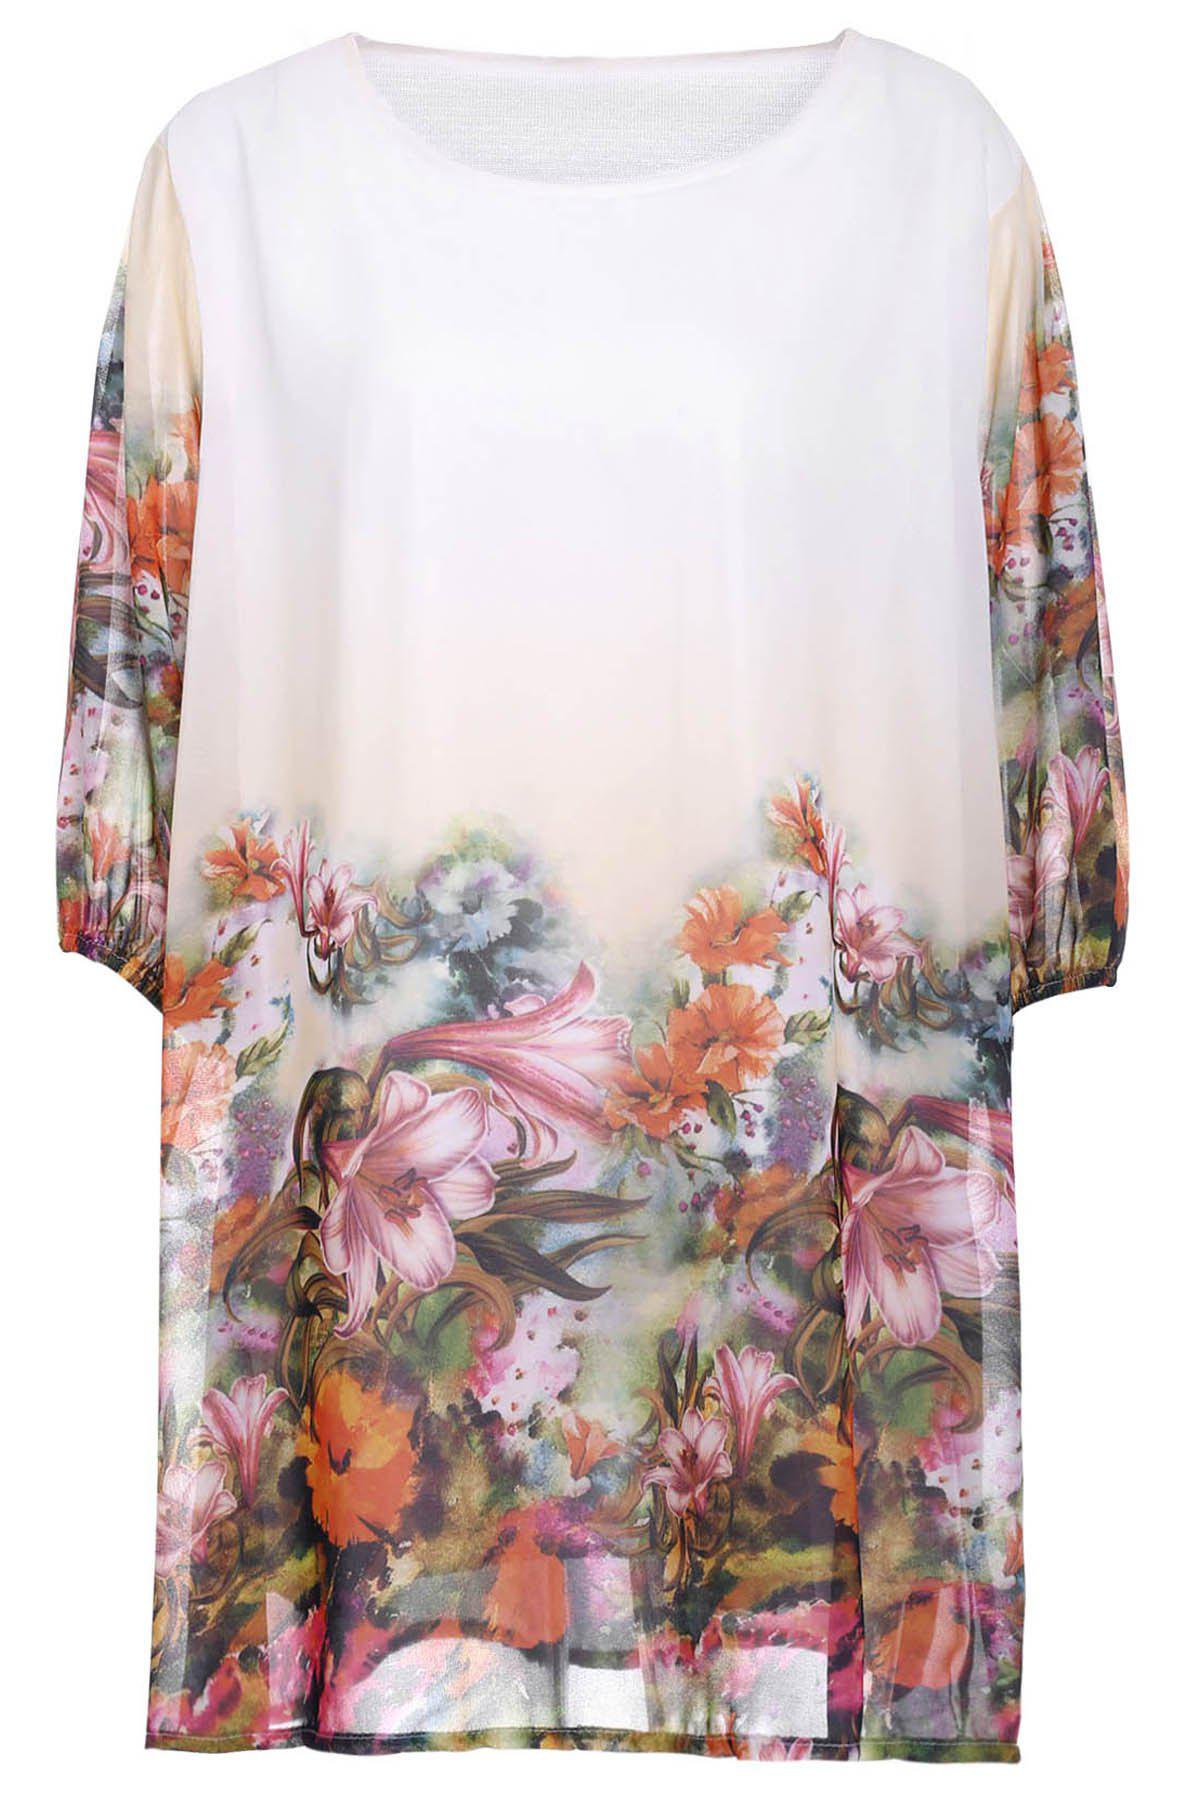 Women's Loose-Fitting Scoop Neck Floral Print Half Sleeve Dress - WHITE 2XL